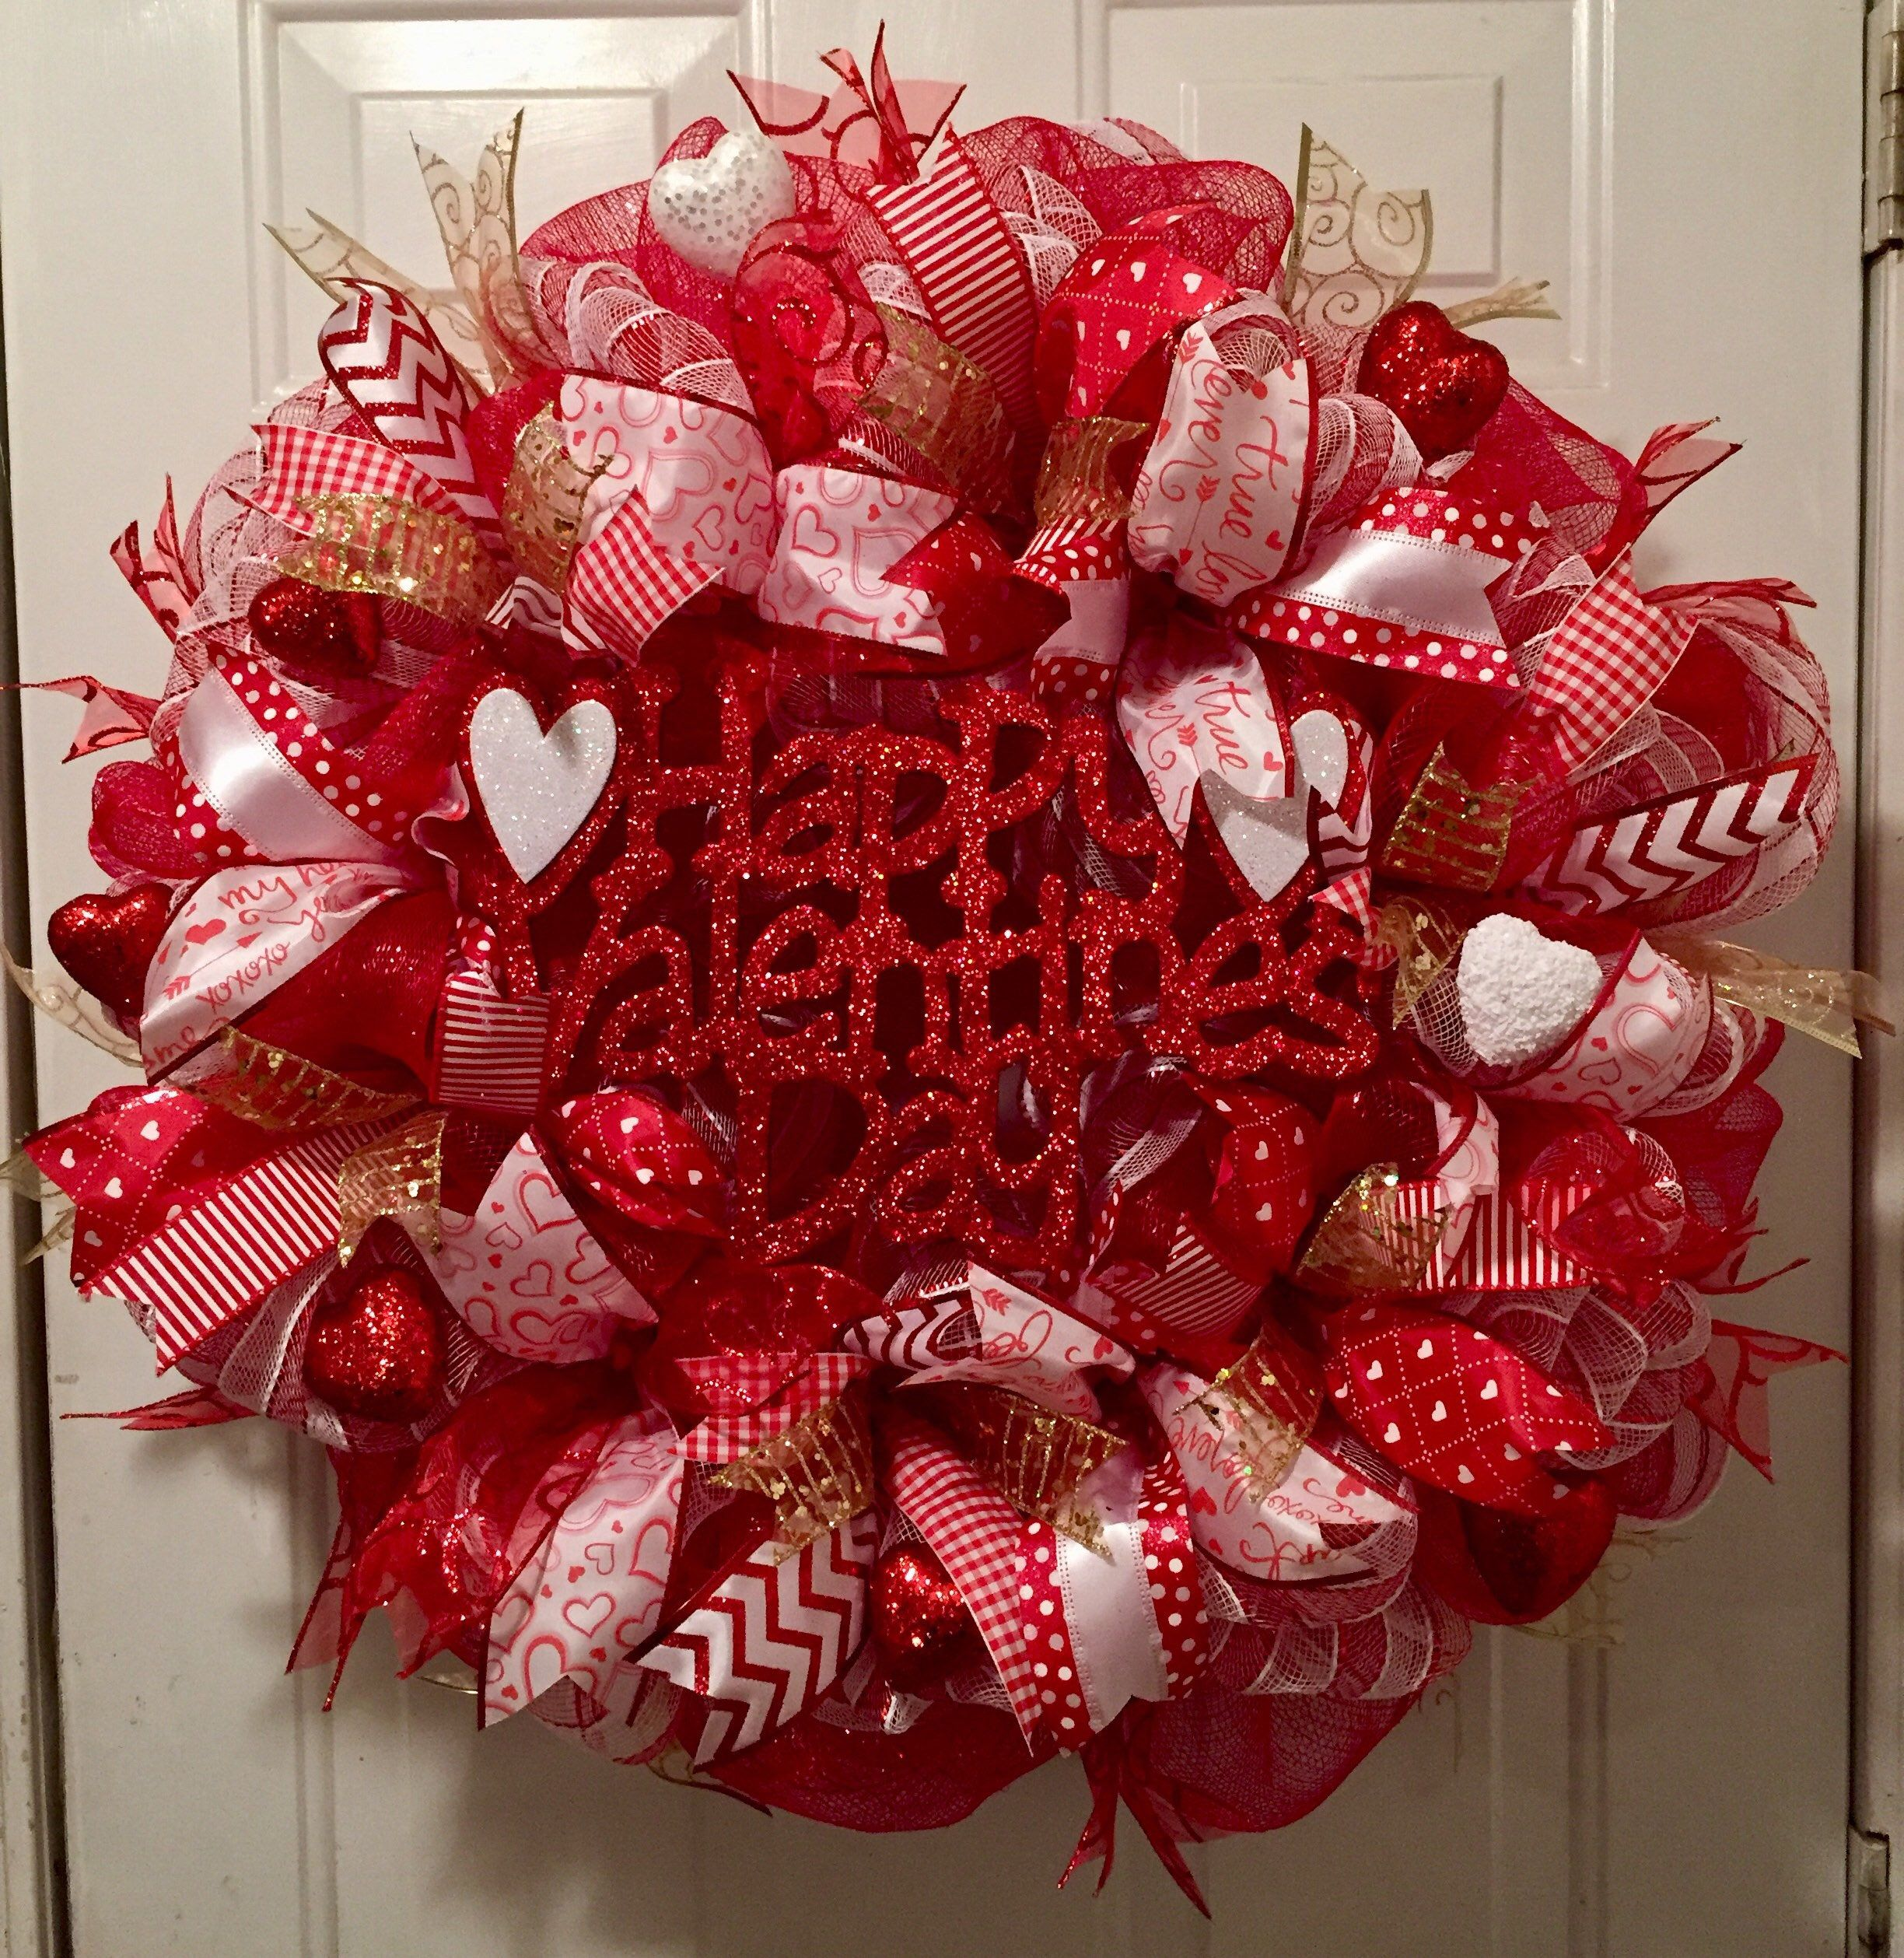 30 Fancy Valentine Day Wreaths For Your Home Decoration Diy Valentines Day Wreath Diy Valentines Decorations Valentine Wreath Craft